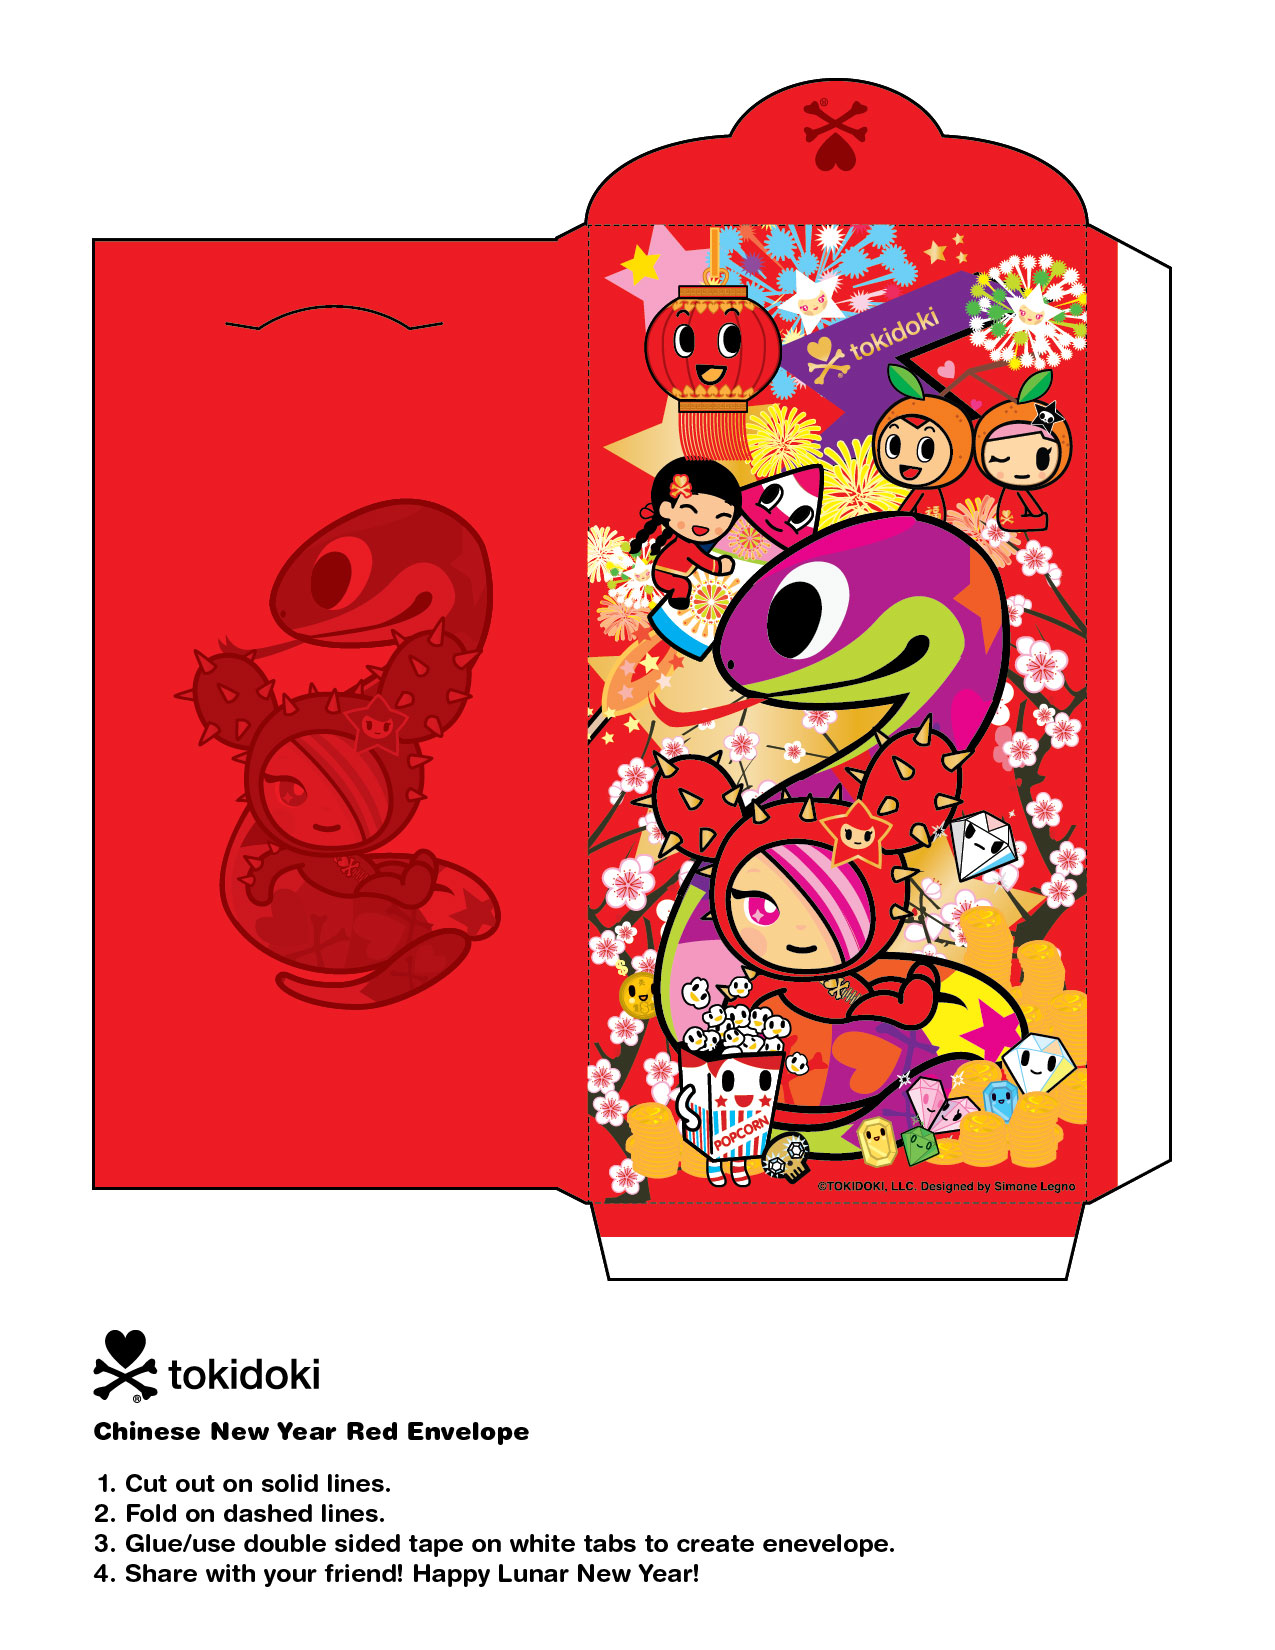 tokidoki_Chinese_New_Year_2013_red_envelope